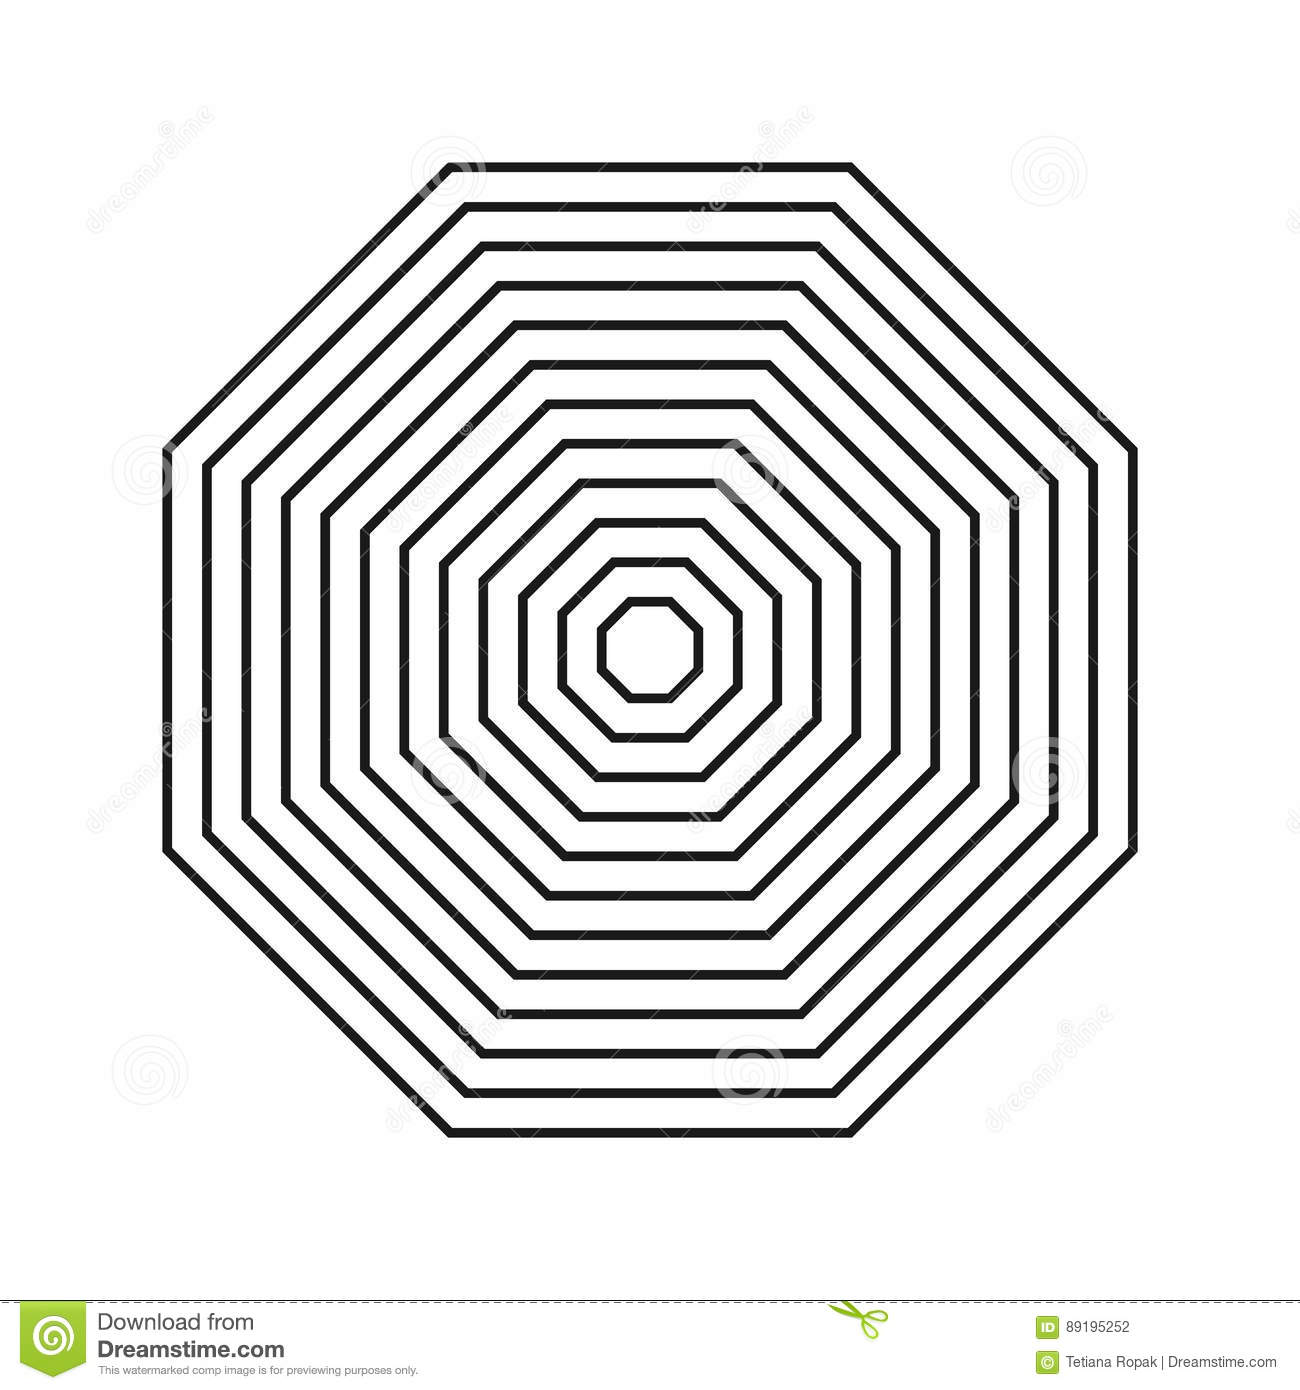 Hypnotic Fascinating Abstract Image. Vector Illustration. Geometric ...